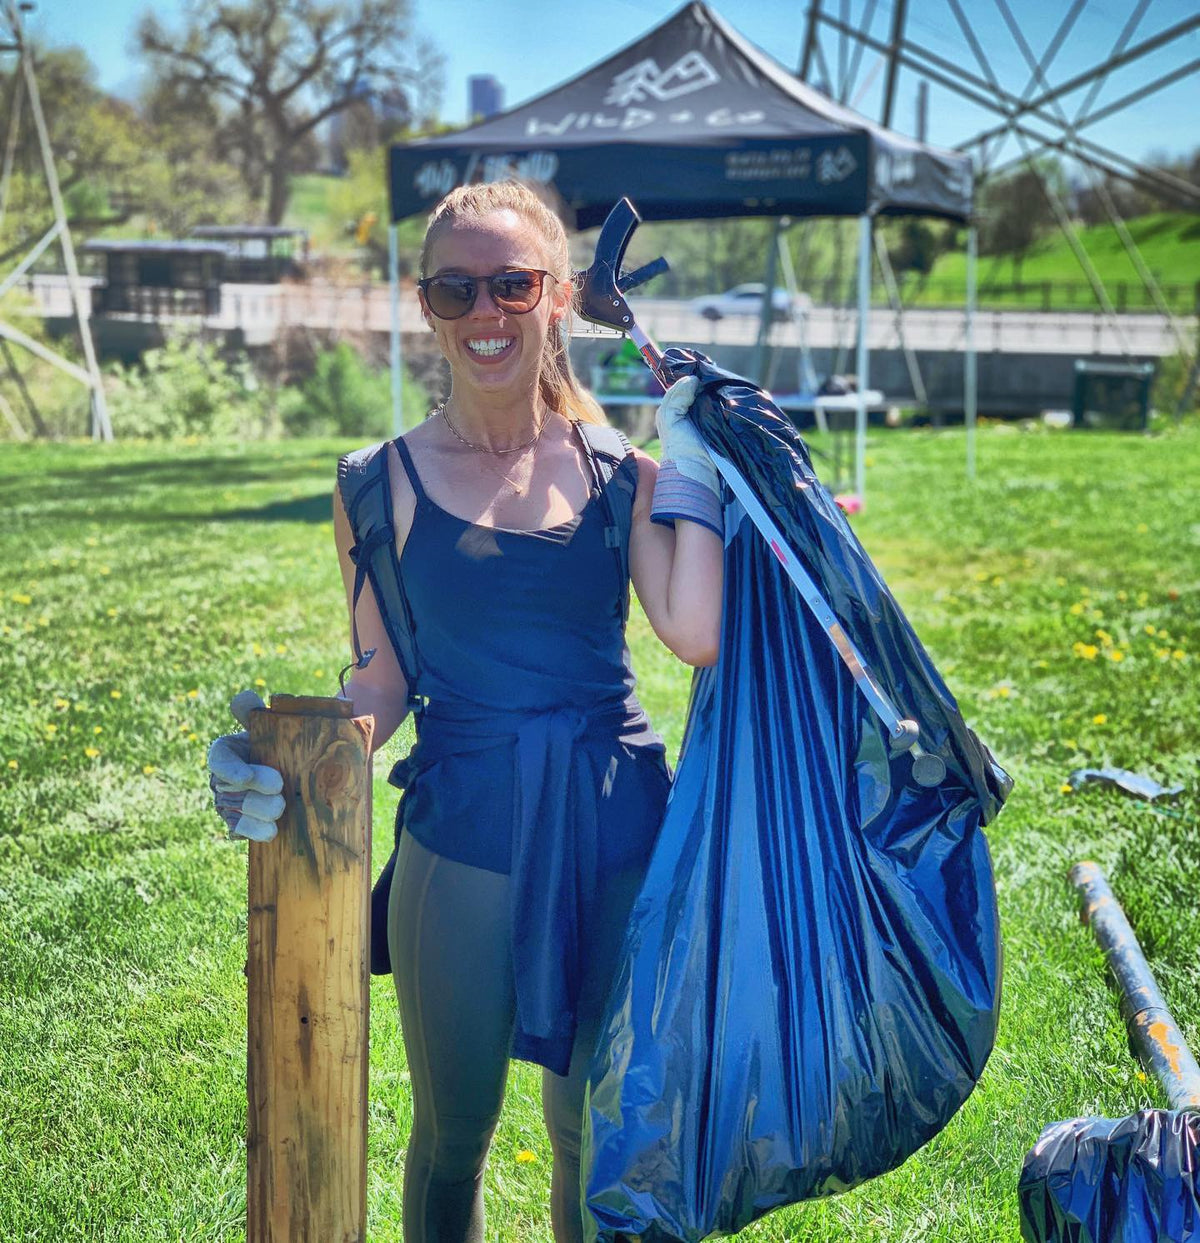 Earth Day 2020 Trail Clean-up Event in Denver!